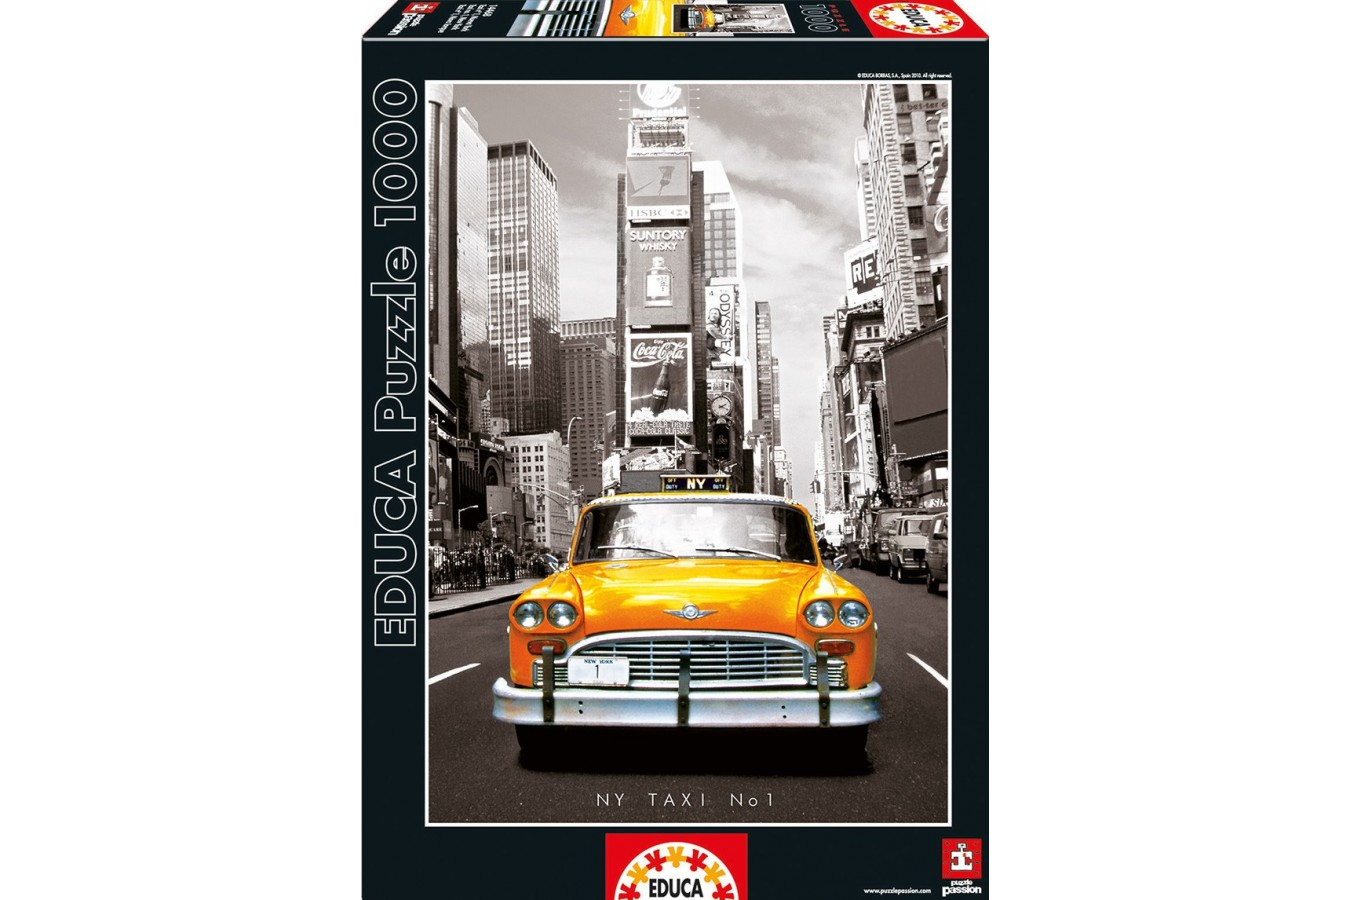 Puzzle Educa - Taxi nr. 1 New York, 1000 piese, include lipici puzzle (14468)